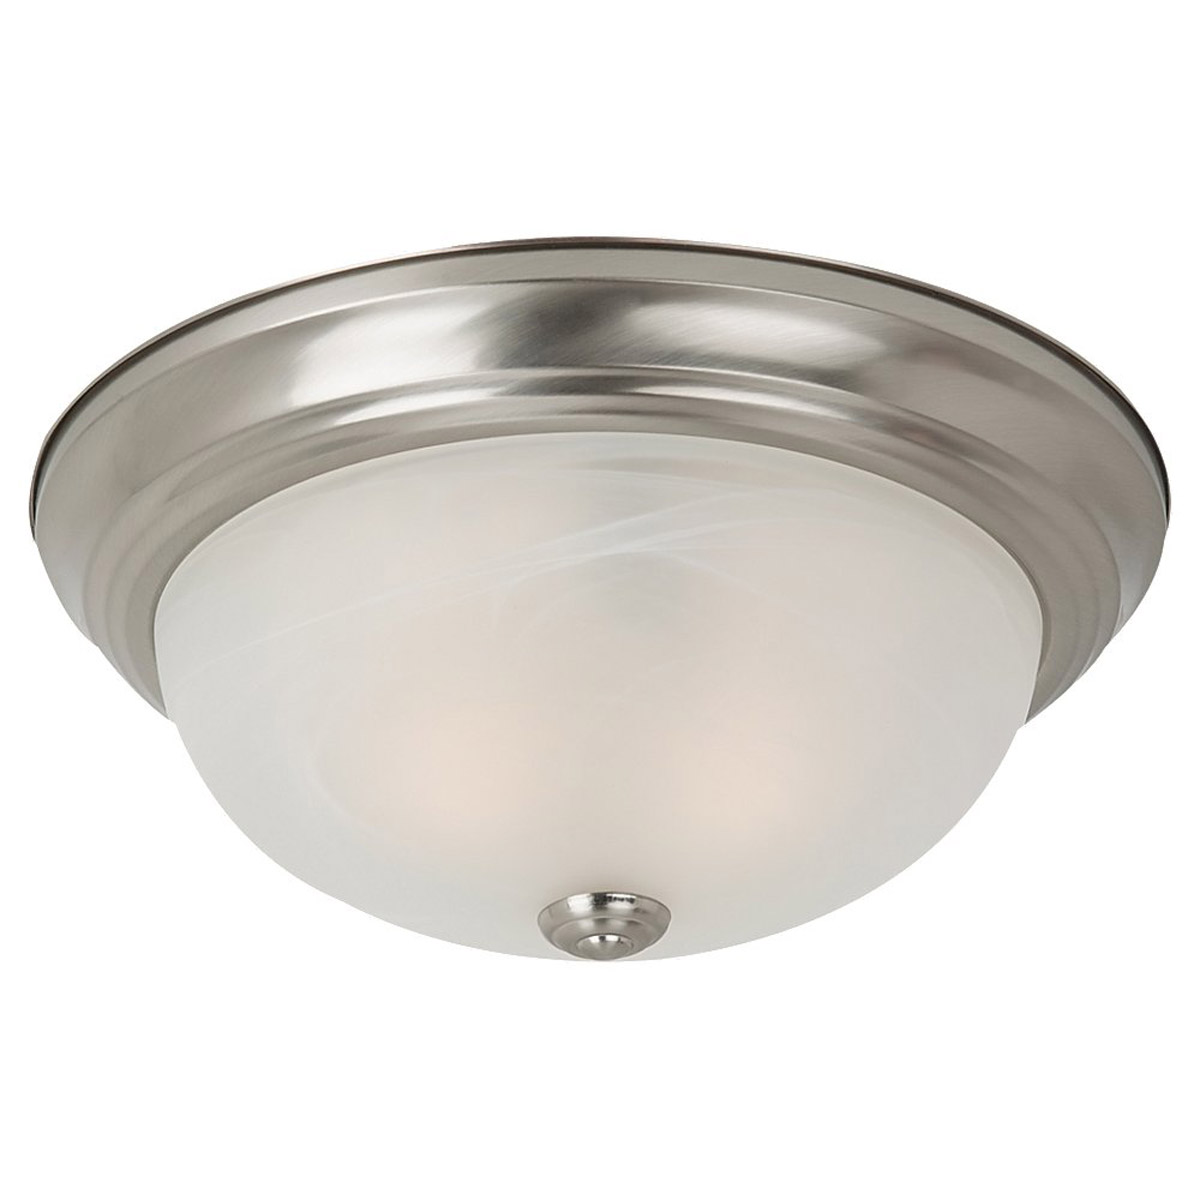 Sea Gull 75940BLE-962 Windgate 1 Light 11 inch Brushed Nickel Flush Mount Ceiling Light in Fluorescent photo